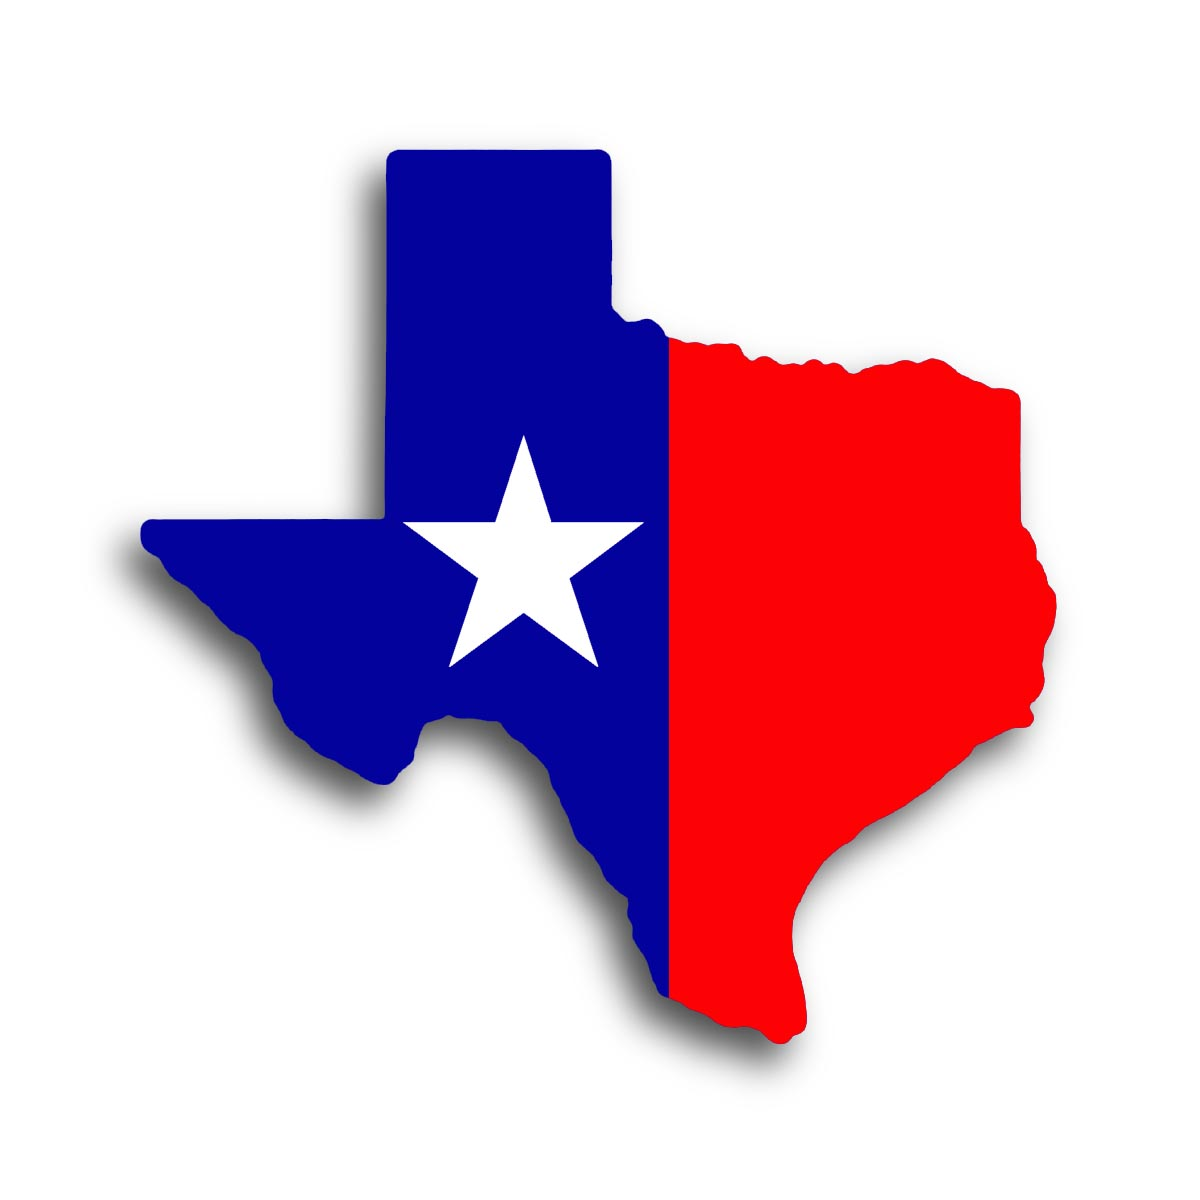 1200x1200 Cool Texas Logos Free 38 For Your Awesome Logos With Texas Logos